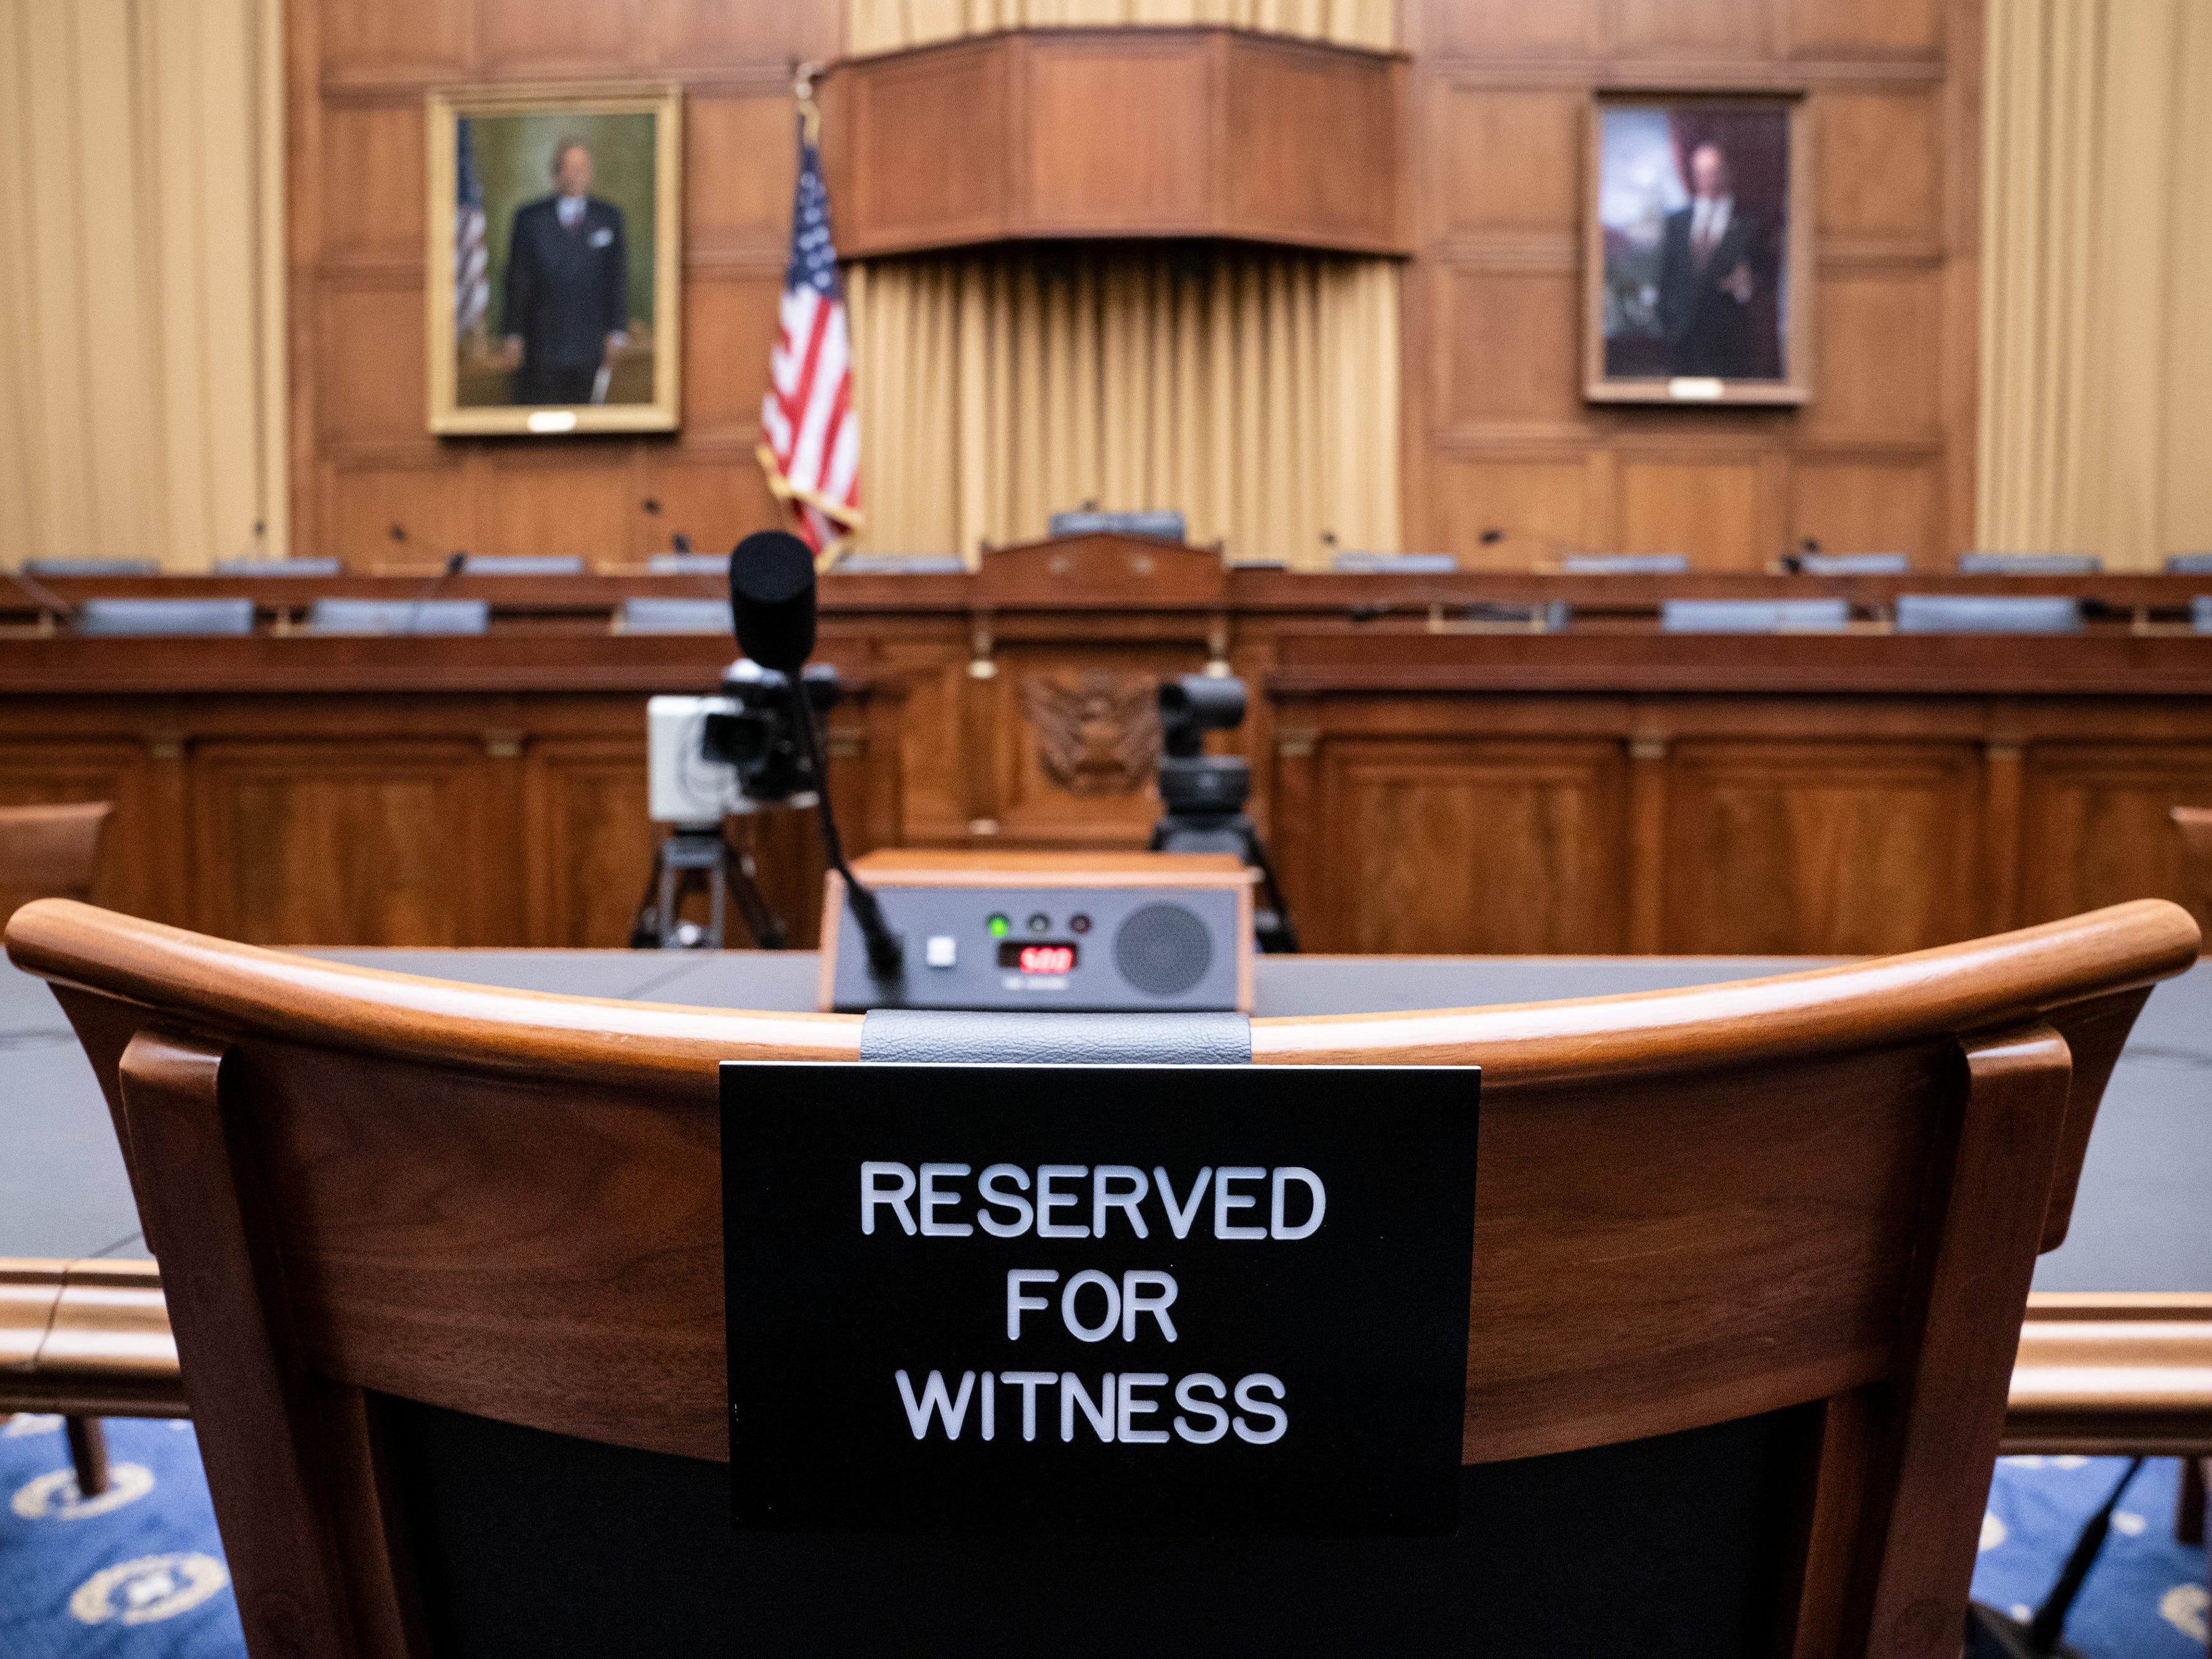 The witness chair in the House Judiciary Committee is expected to be without former White House Counsel Don McGahn, who was a key figure in special counsel Robert Mueller's investigation, on Capitol Hill in Washington,  May 21, 2019. President Donald Trump directed McGahn to defy a congressional subpoena to testify but the committee's chairman, Rep. Jerrold Nadler, D-N.Y., has threatened to hold McGahn in contempt of Congress if he doesn't appear.